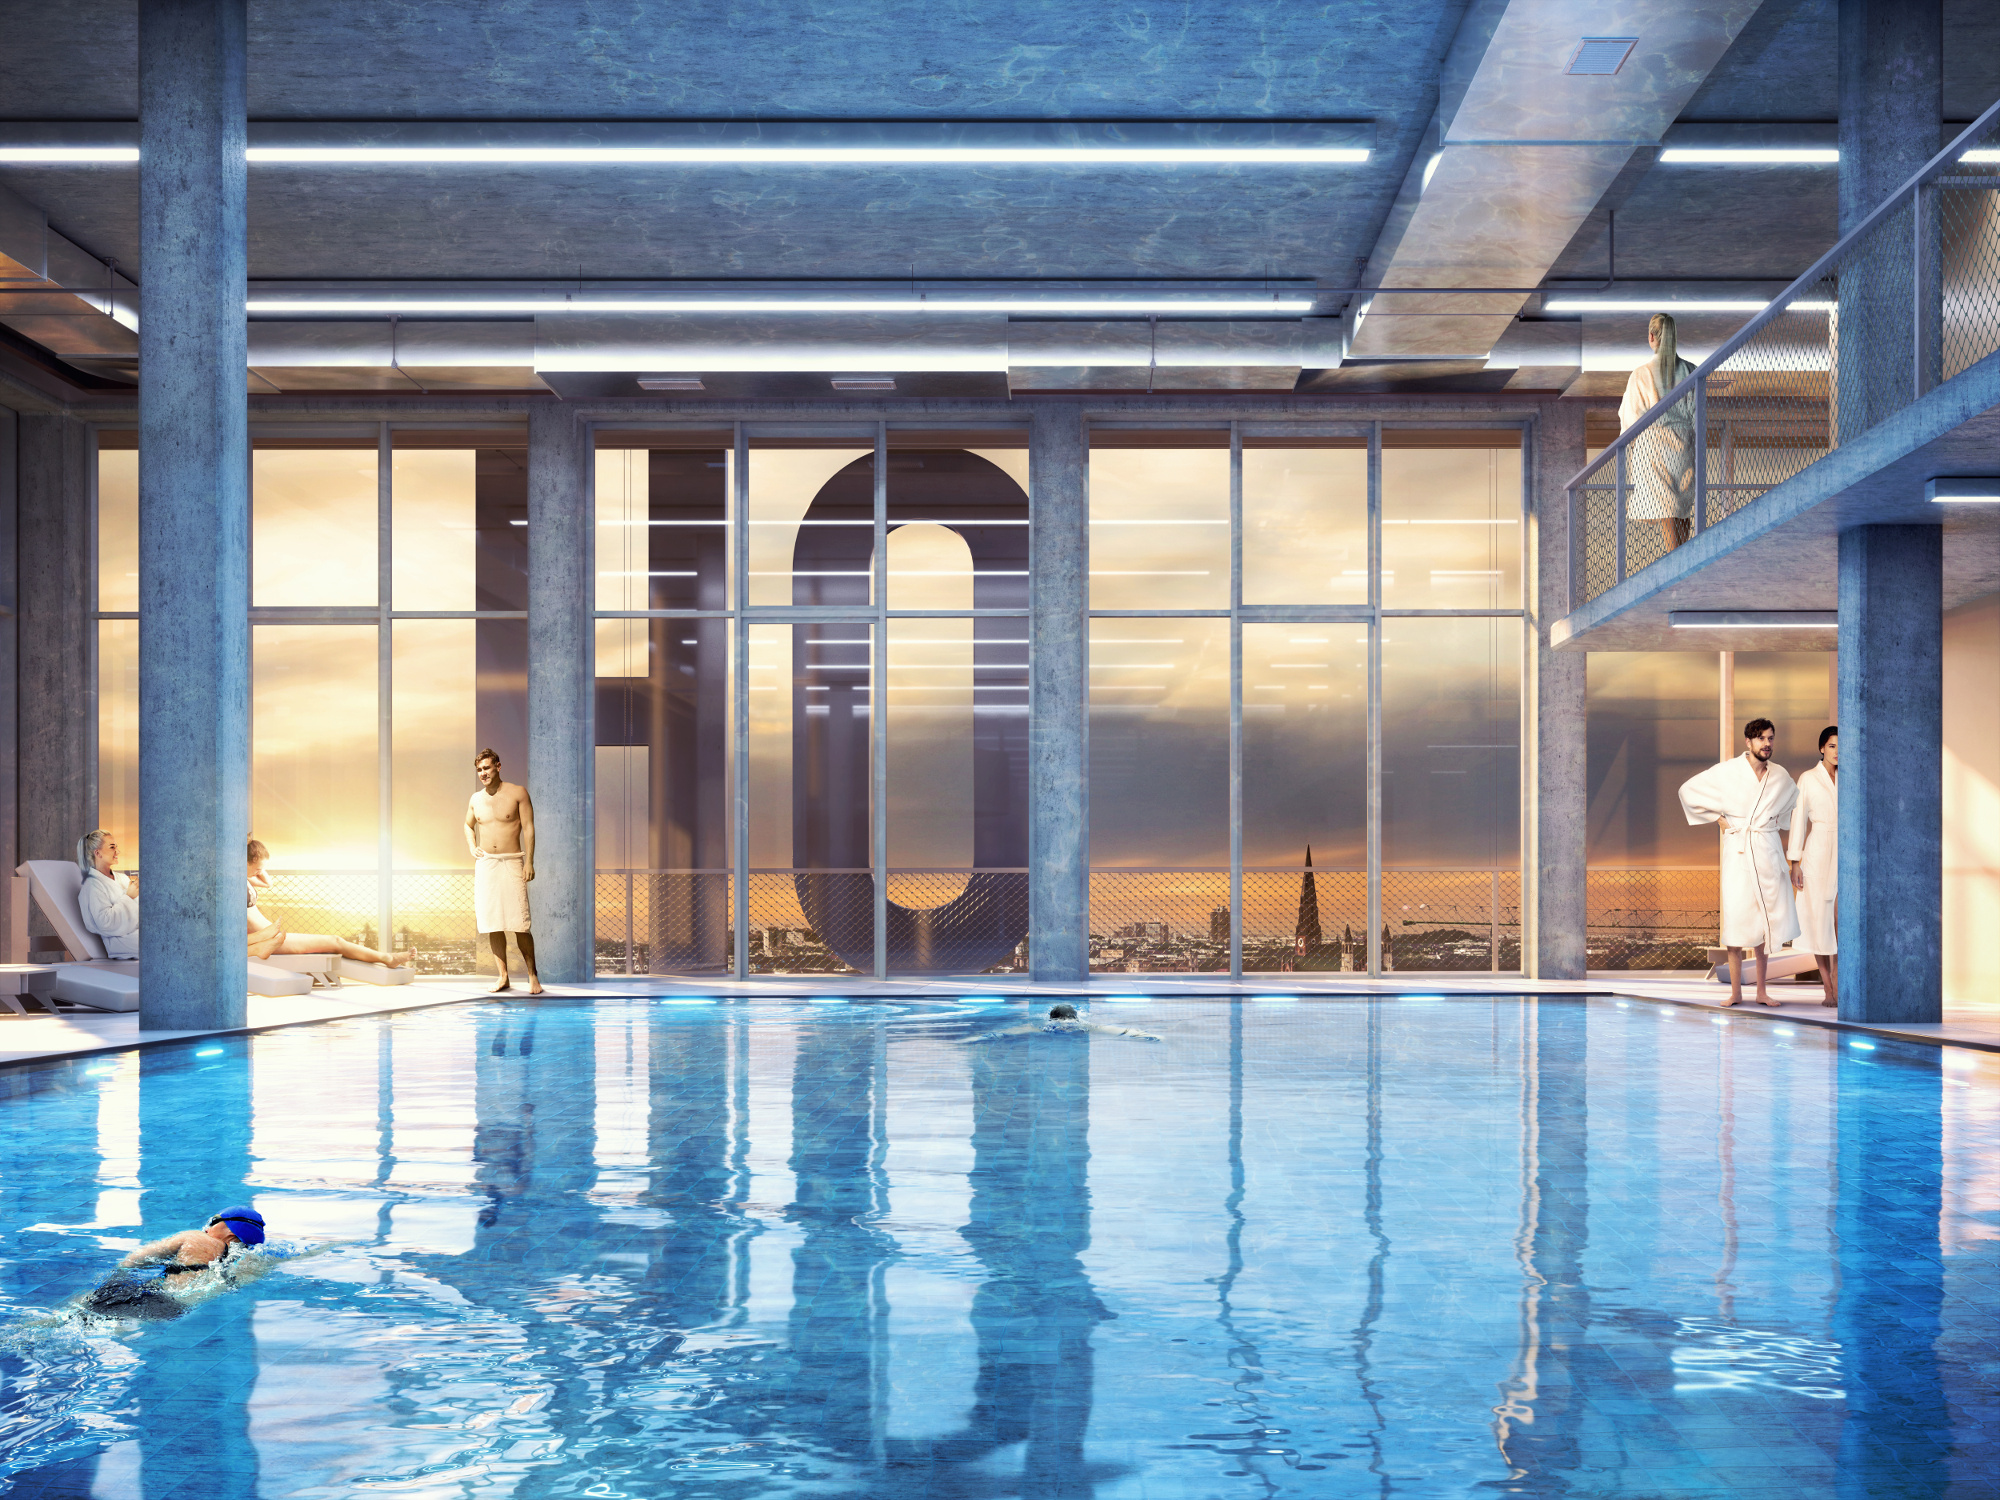 As well as office spaces, the development will also feature a high-end health club, several bars and restaurants.